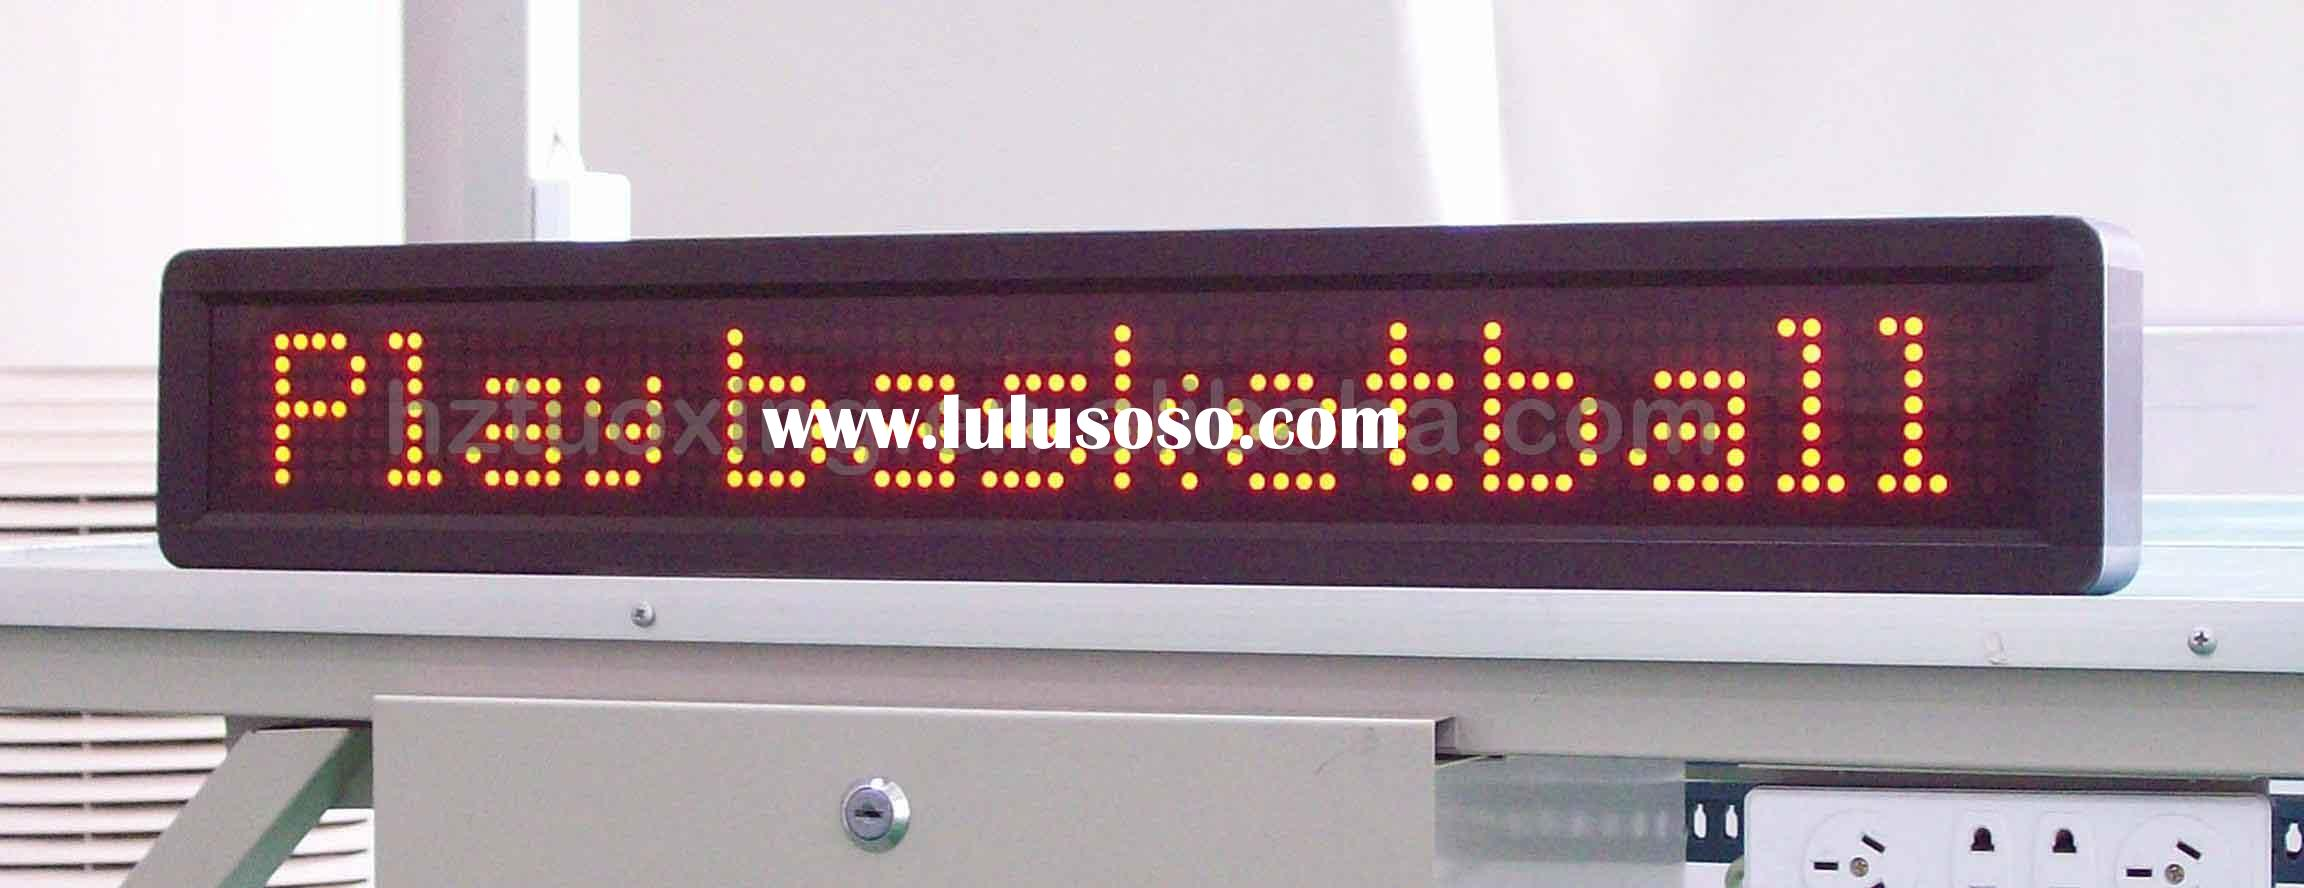 led text moving display, message moving display, single line displays